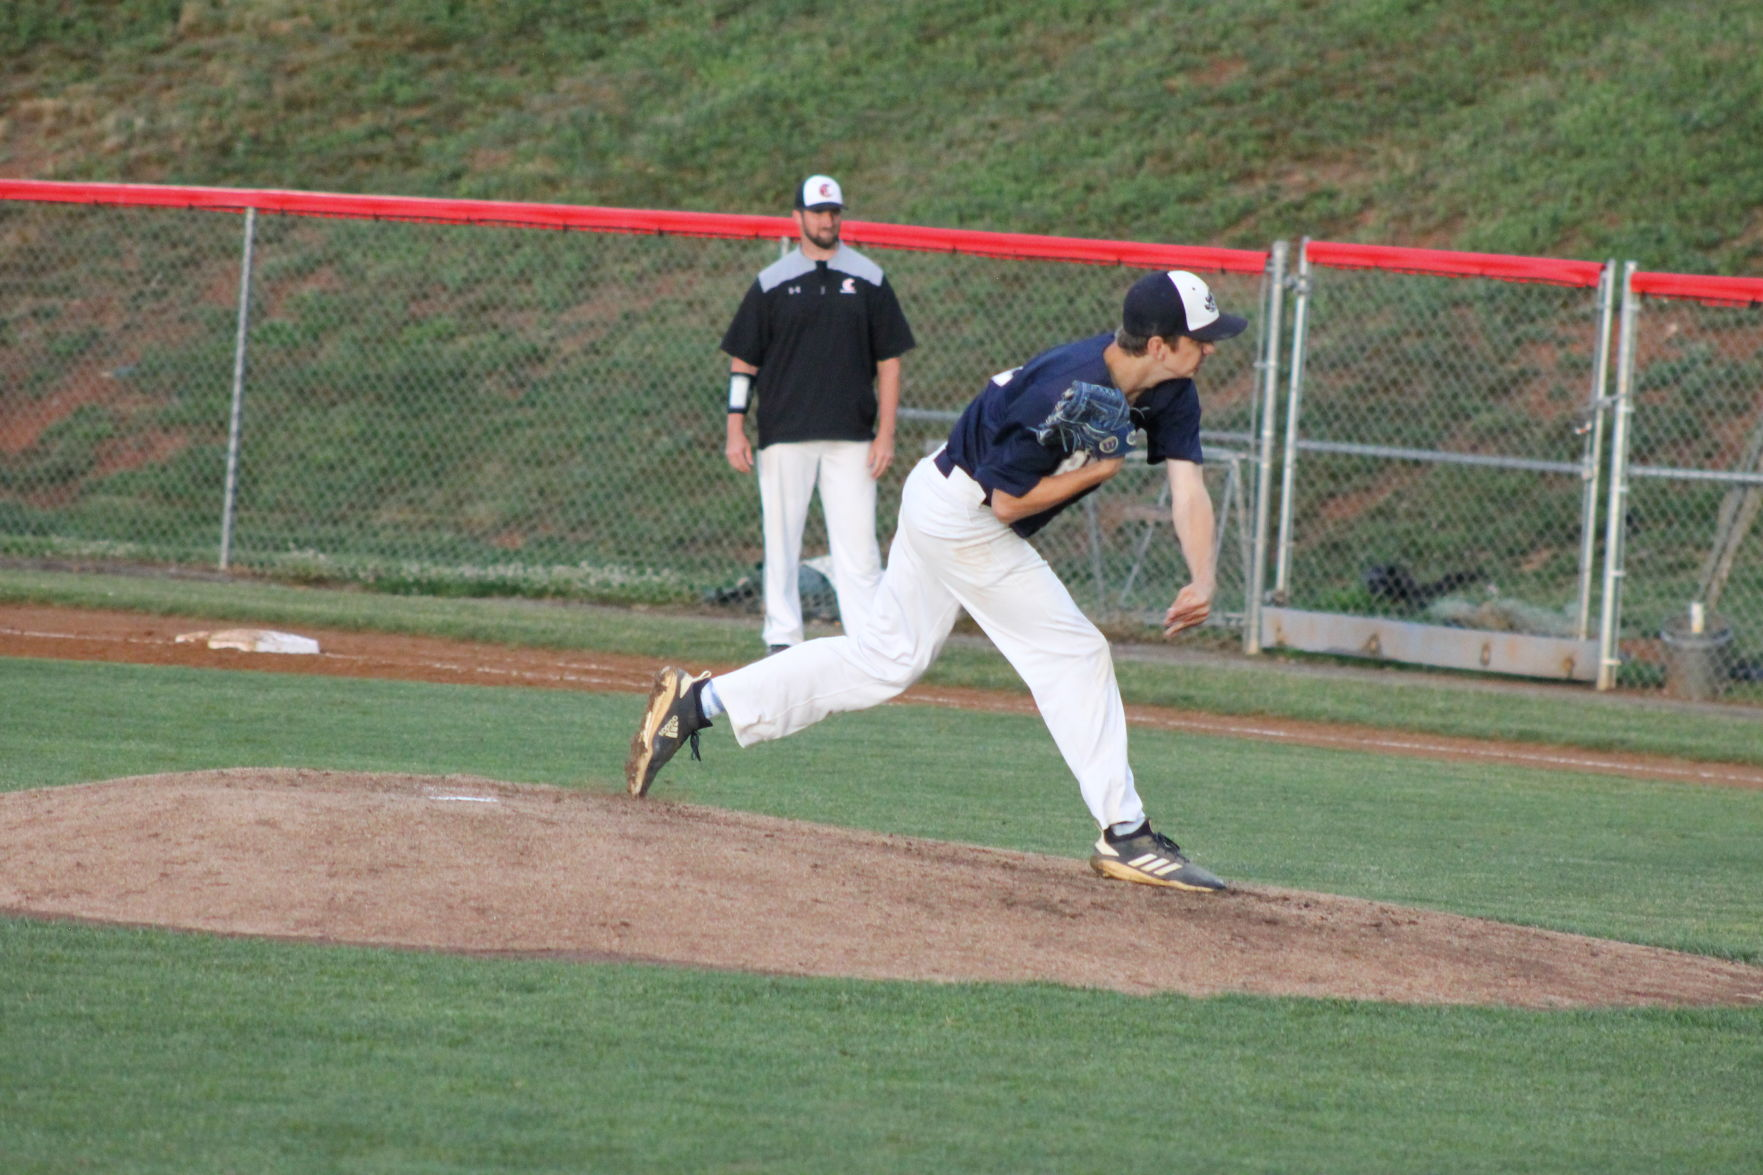 Chatham rallies past Appomattox to claim Region 2C baseball throne